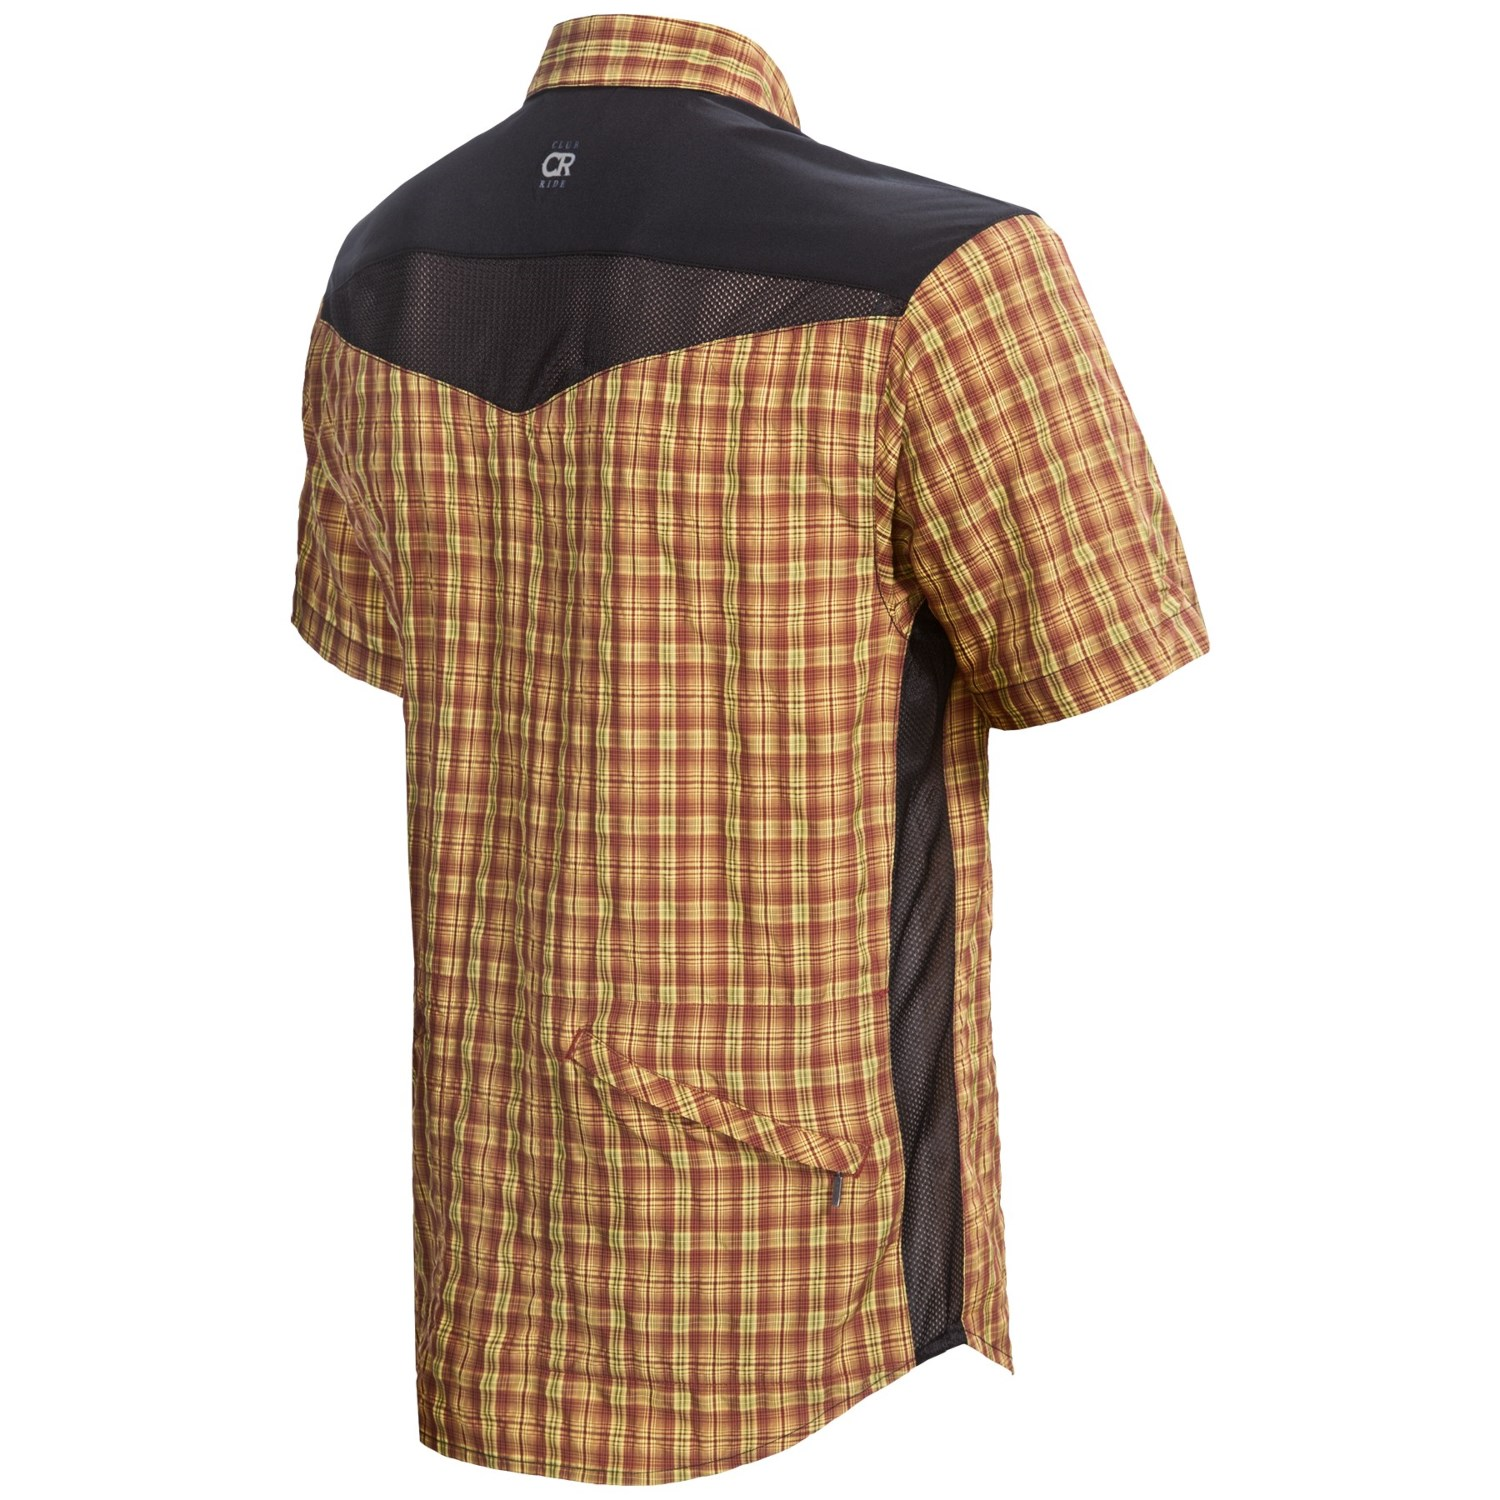 84edadddb Club Ride New West Cycling Shirt (For Men) - Save 49%